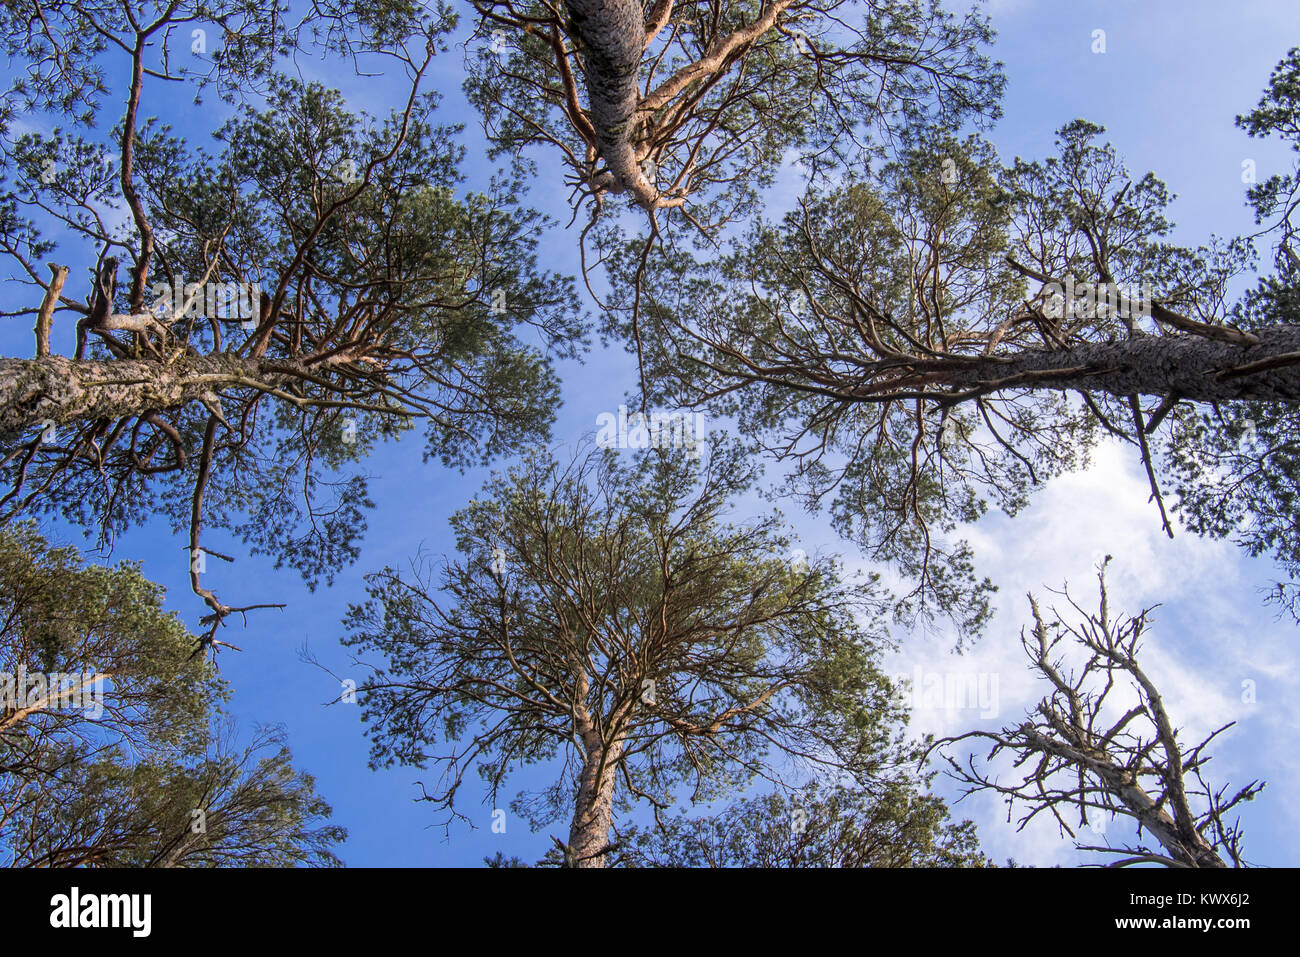 Scots pine trees, Abernethy Forest, remnant of the Caledonian Forest in Strathspey, Scotland, UK - Stock Image